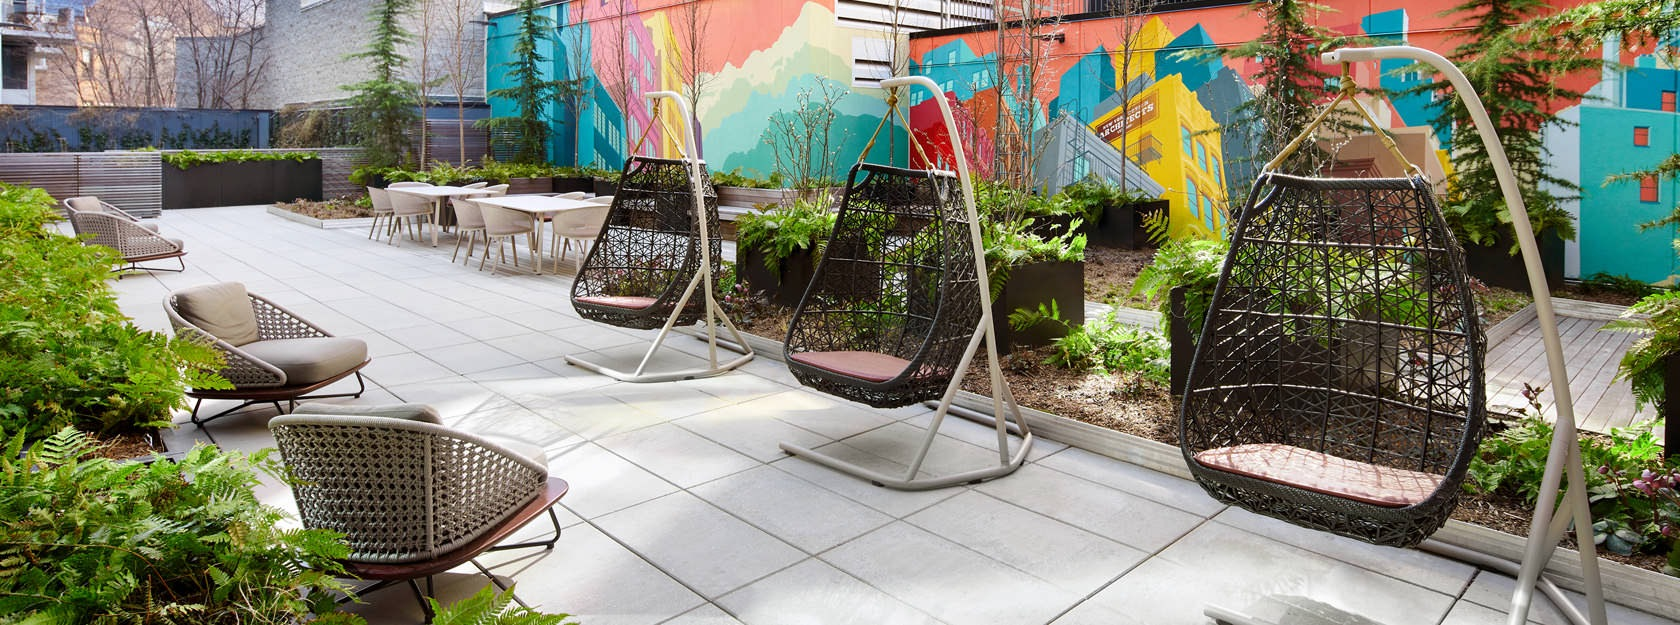 swinging pods and other tables and chairs on patio